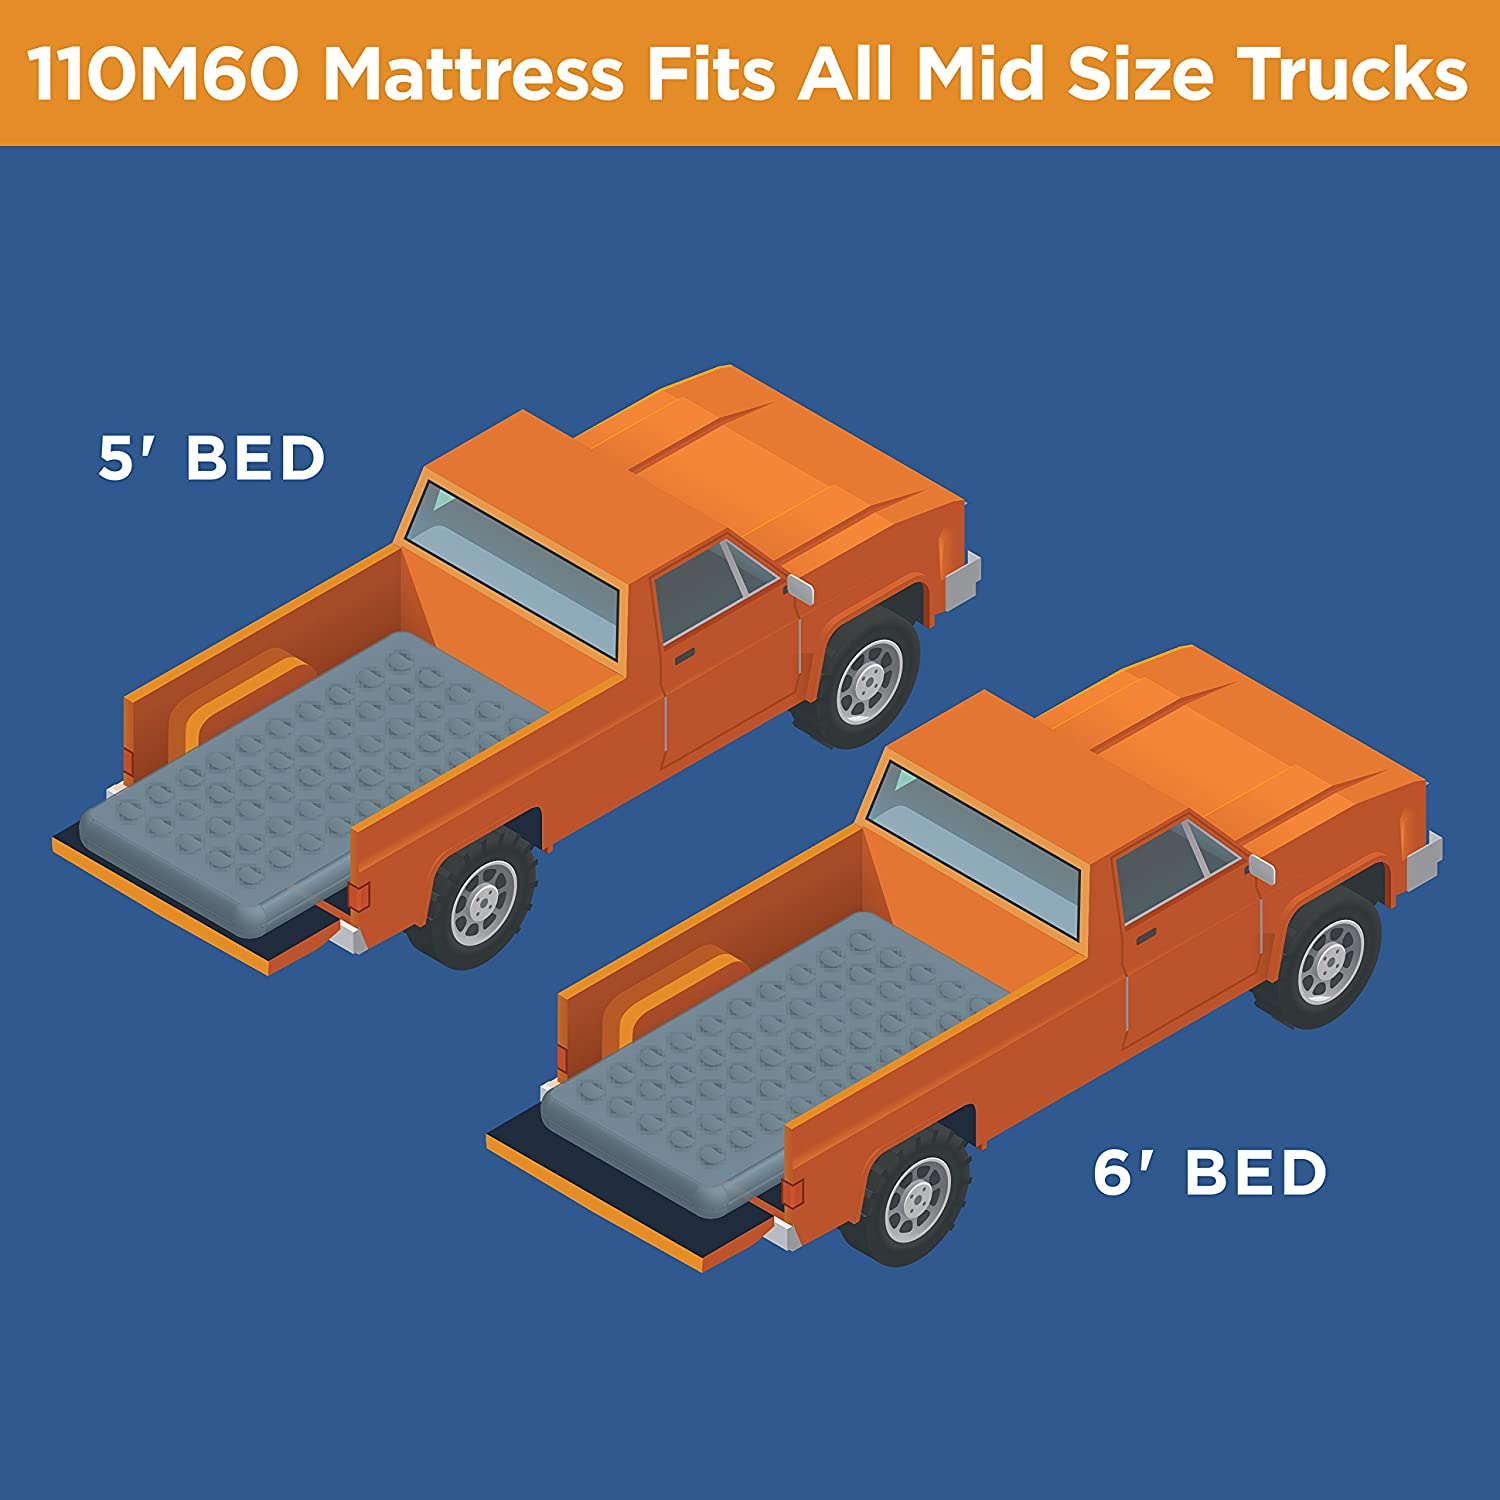 w us mattress product bgrd stellar truck